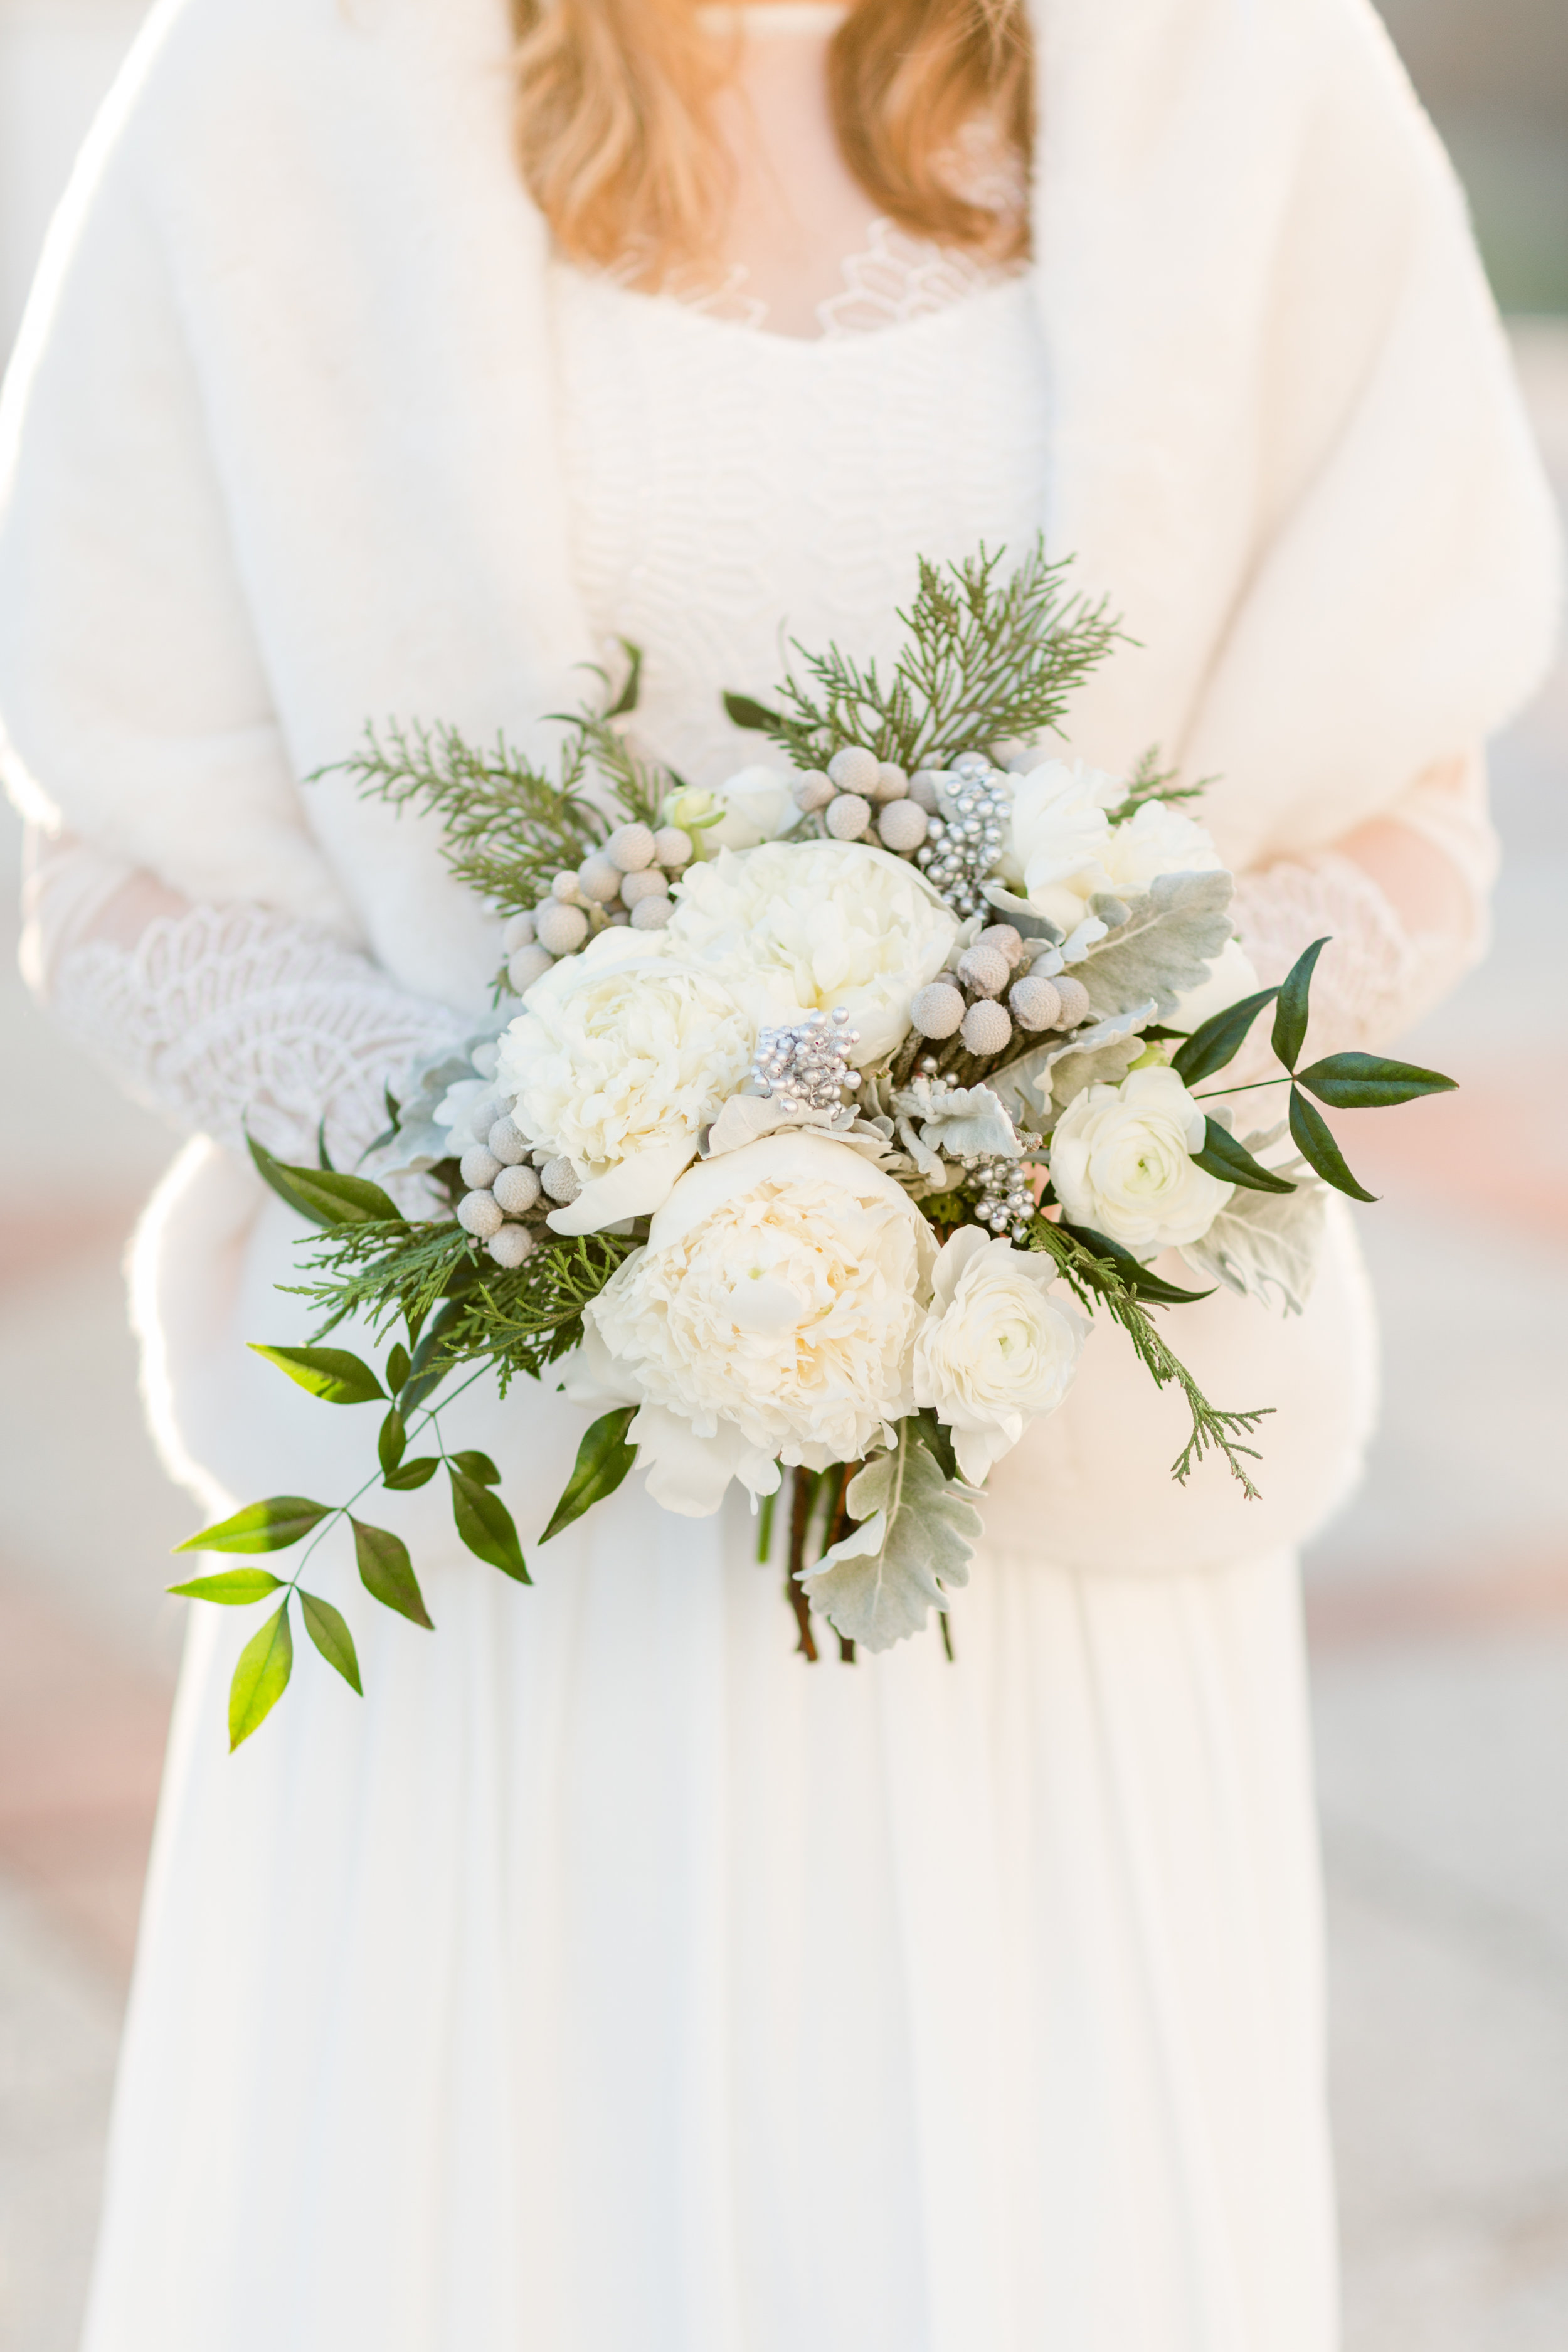 Winter Wedding Inspiration at Congressional Country Club